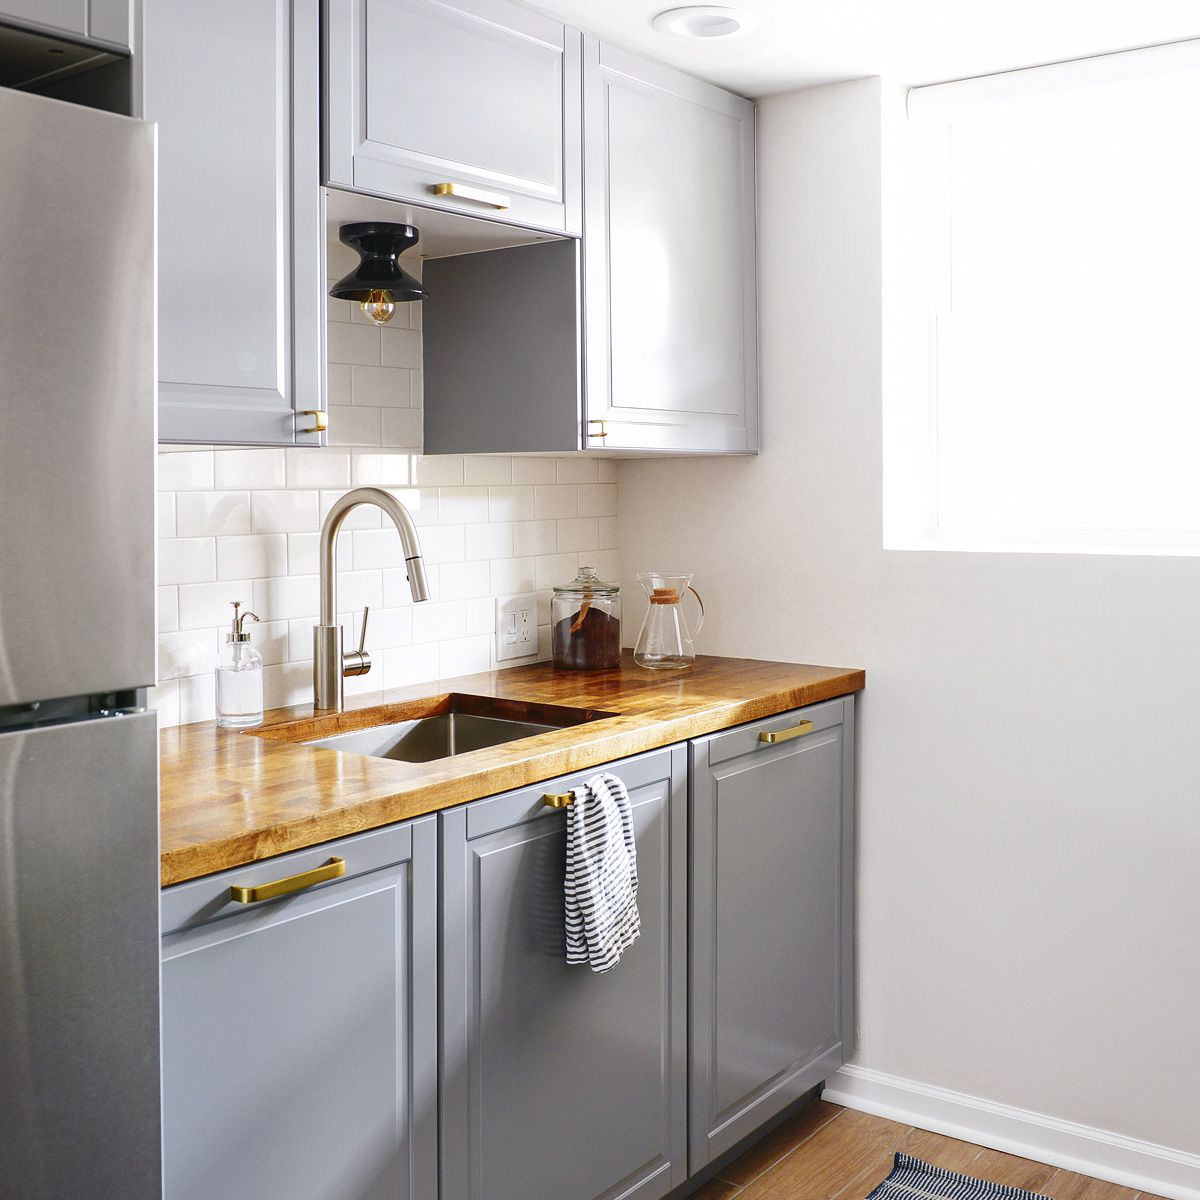 A kitchenette with gray IKEA cabinets